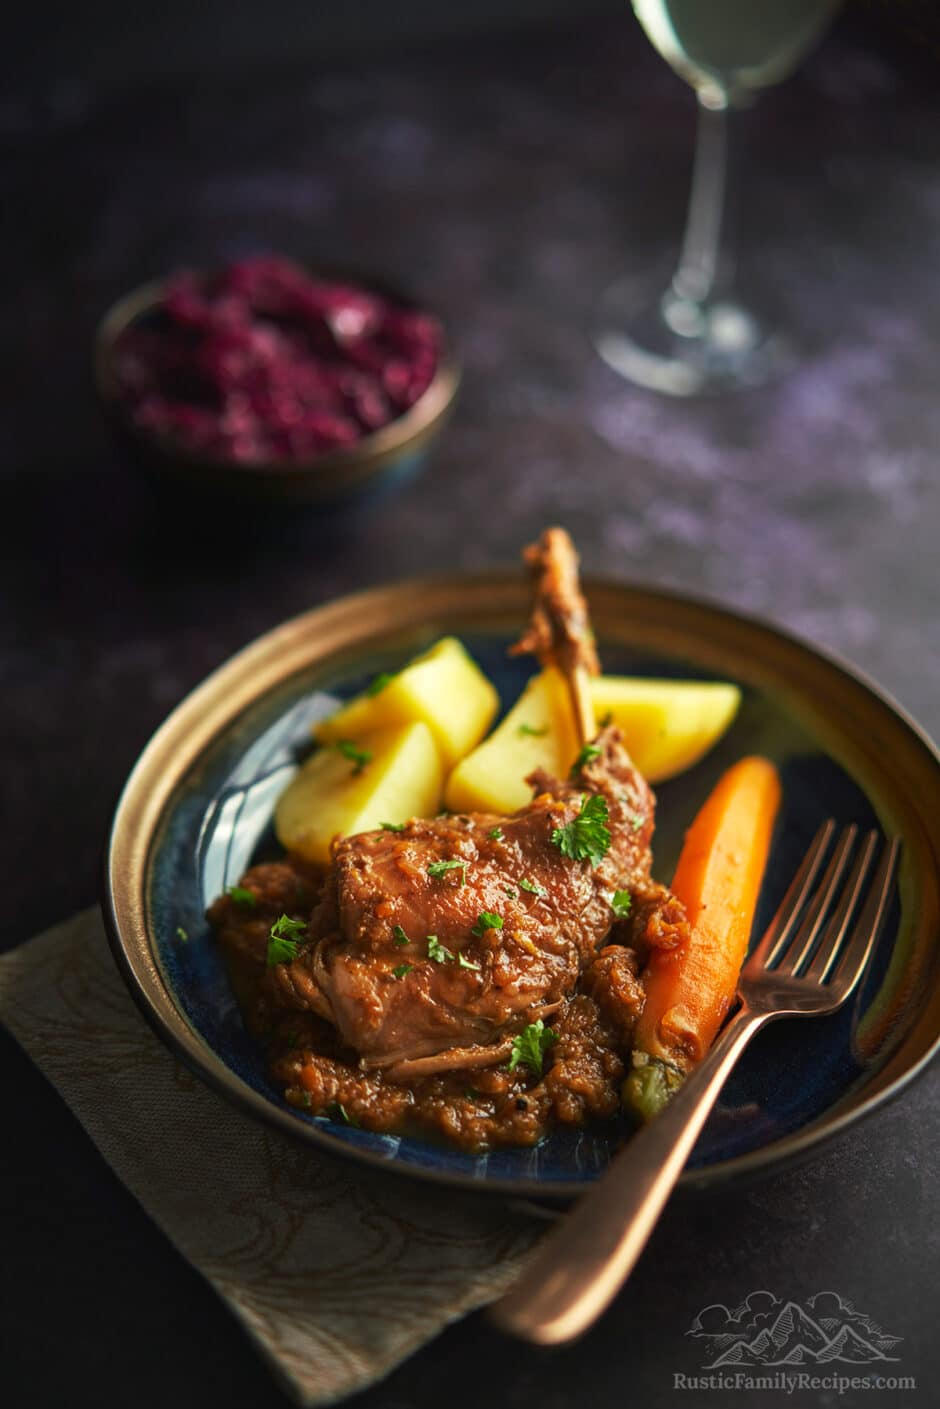 Rabbit stew on a plate with potatoes and carrots